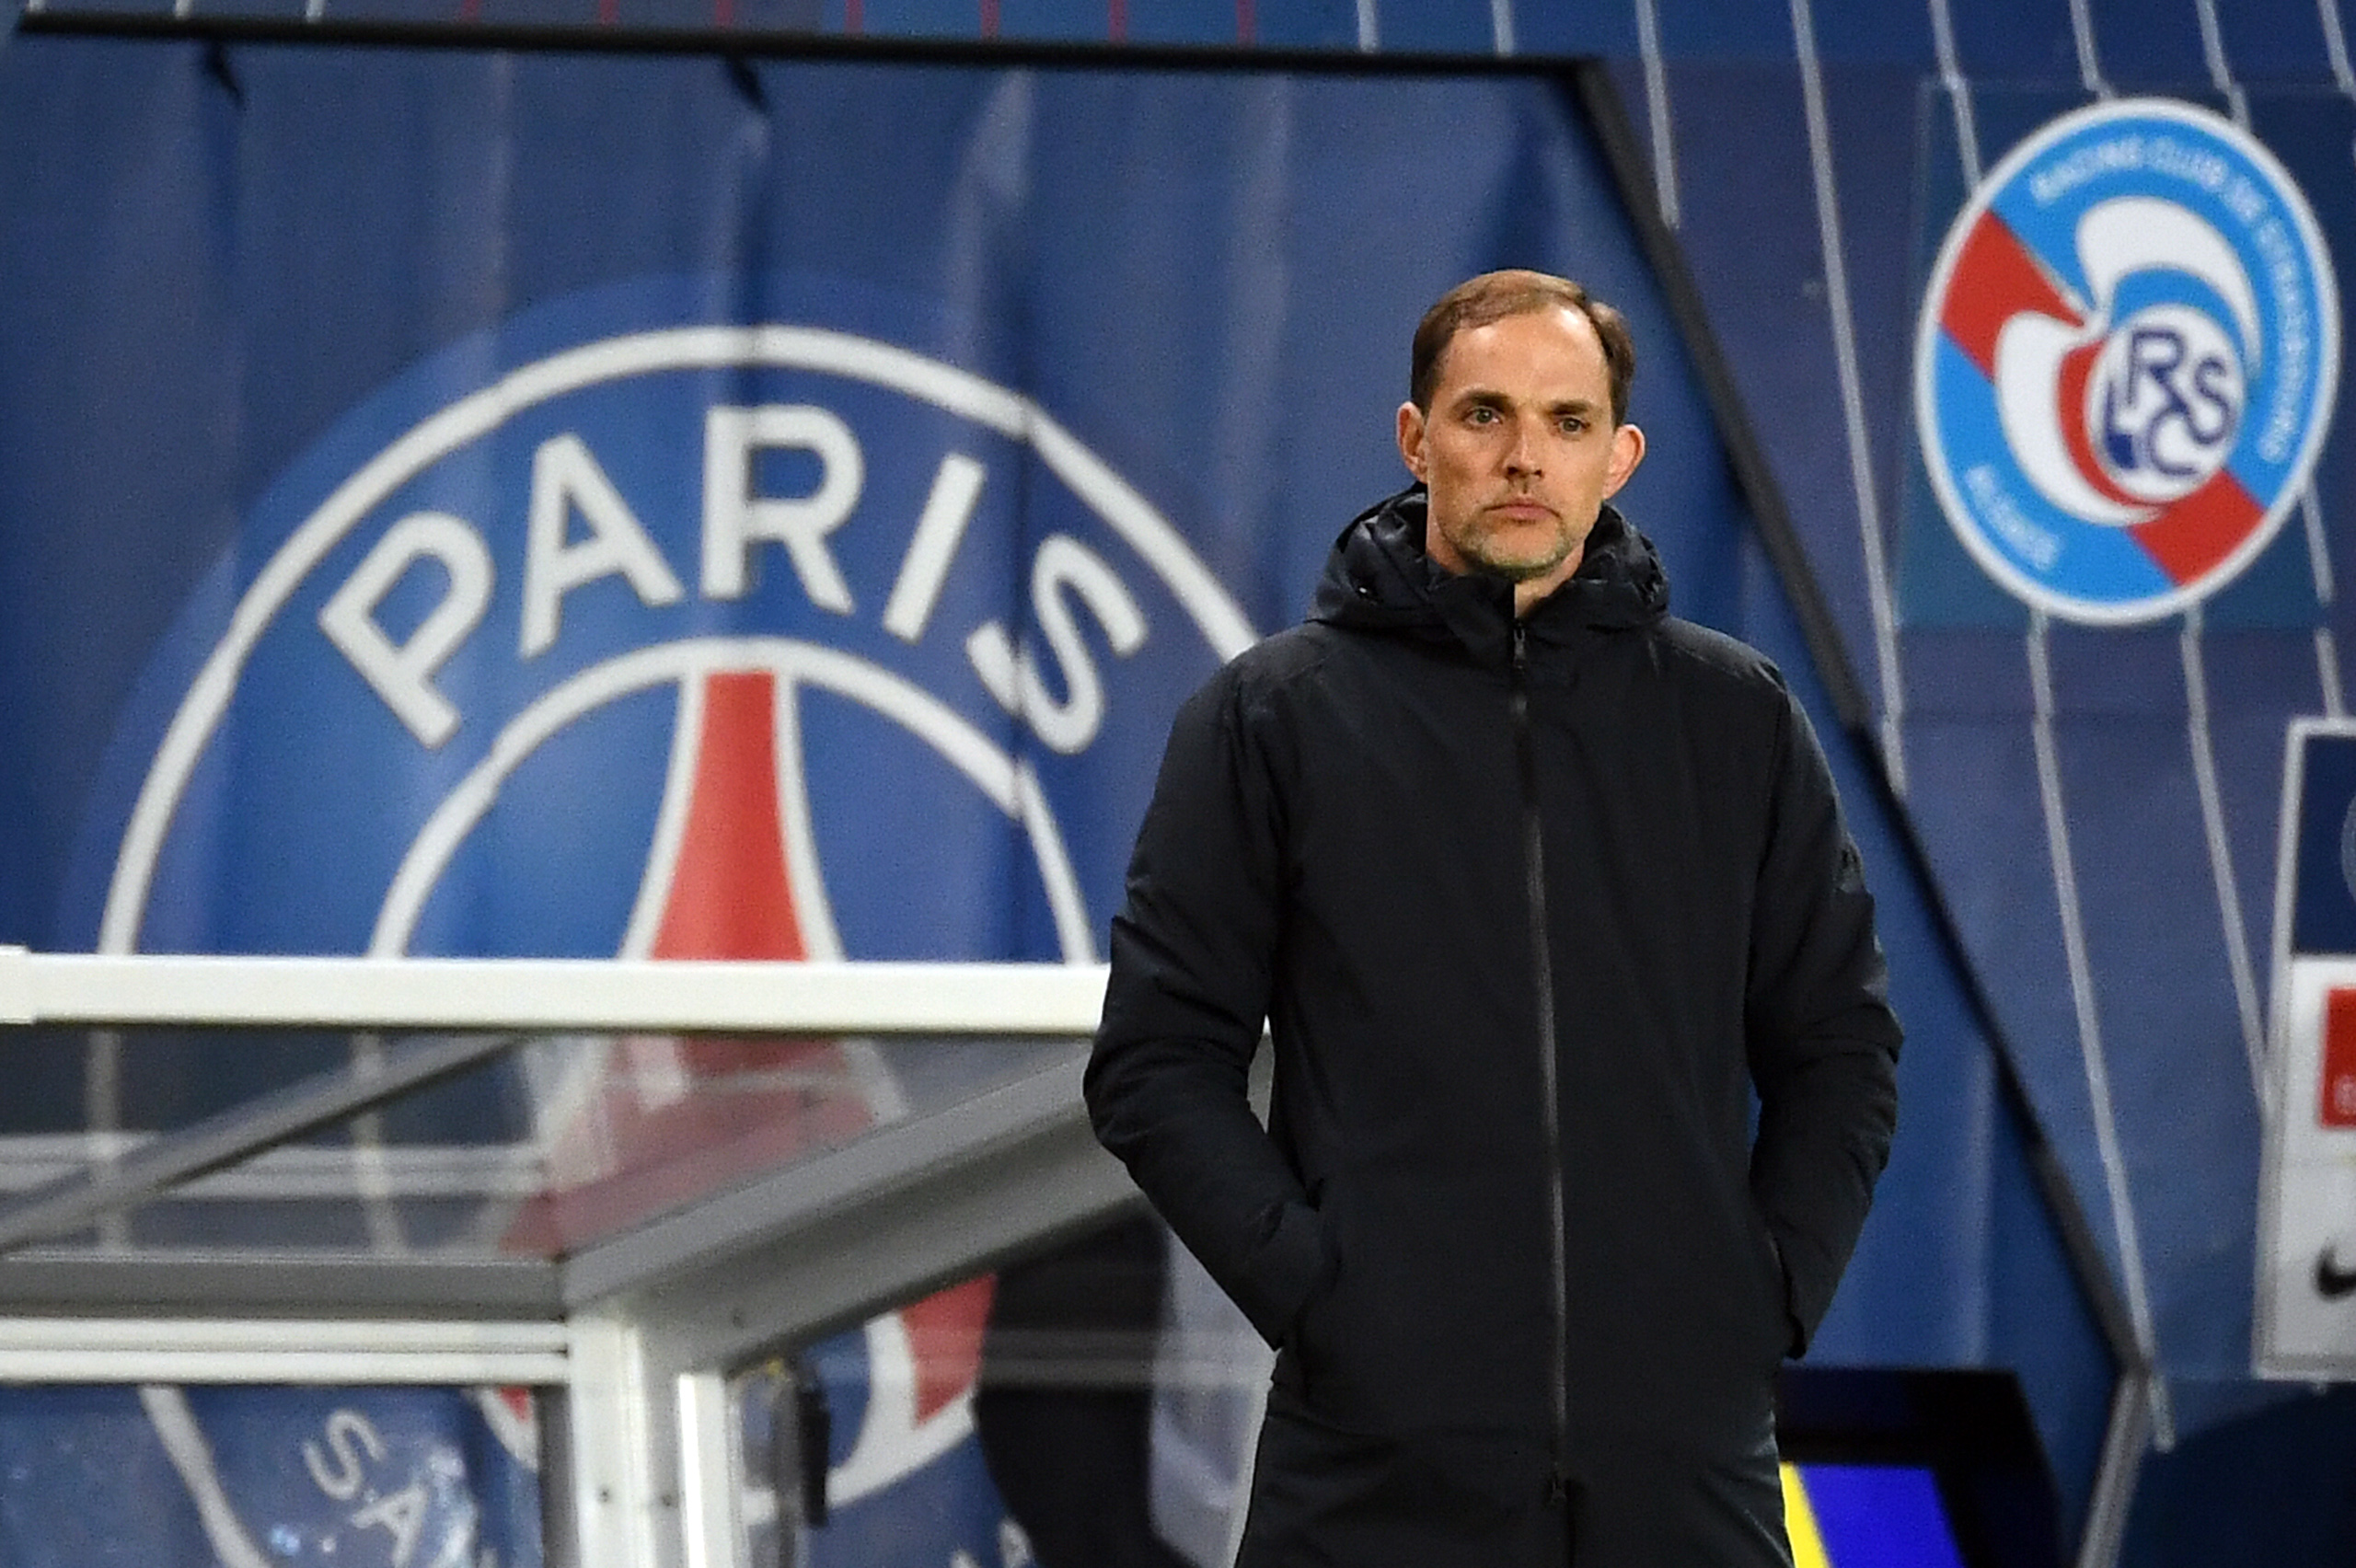 Paris Saint-Germain's German coach Thomas Tuchel has worked with Dembele at Dortmund (Photo credit should read FRANCK FIFE/AFP/Getty Images)